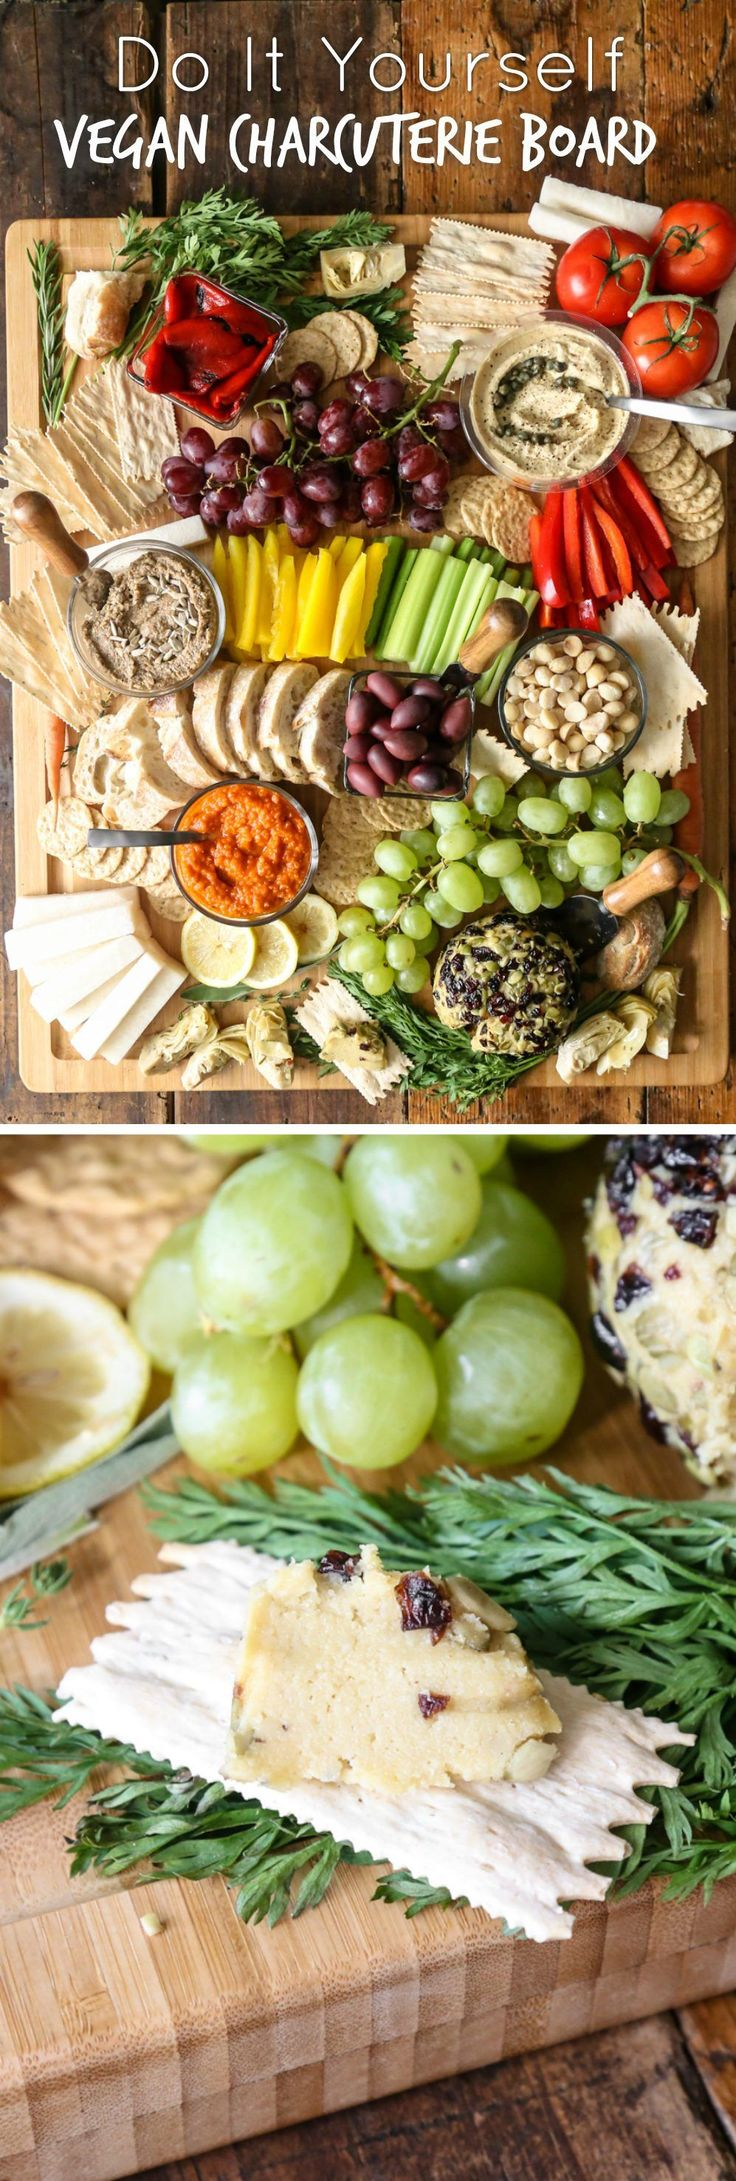 A beautiful spread of fruits and vegetables arranged to create a plant-based charcuterie board that's perfect for your next party.